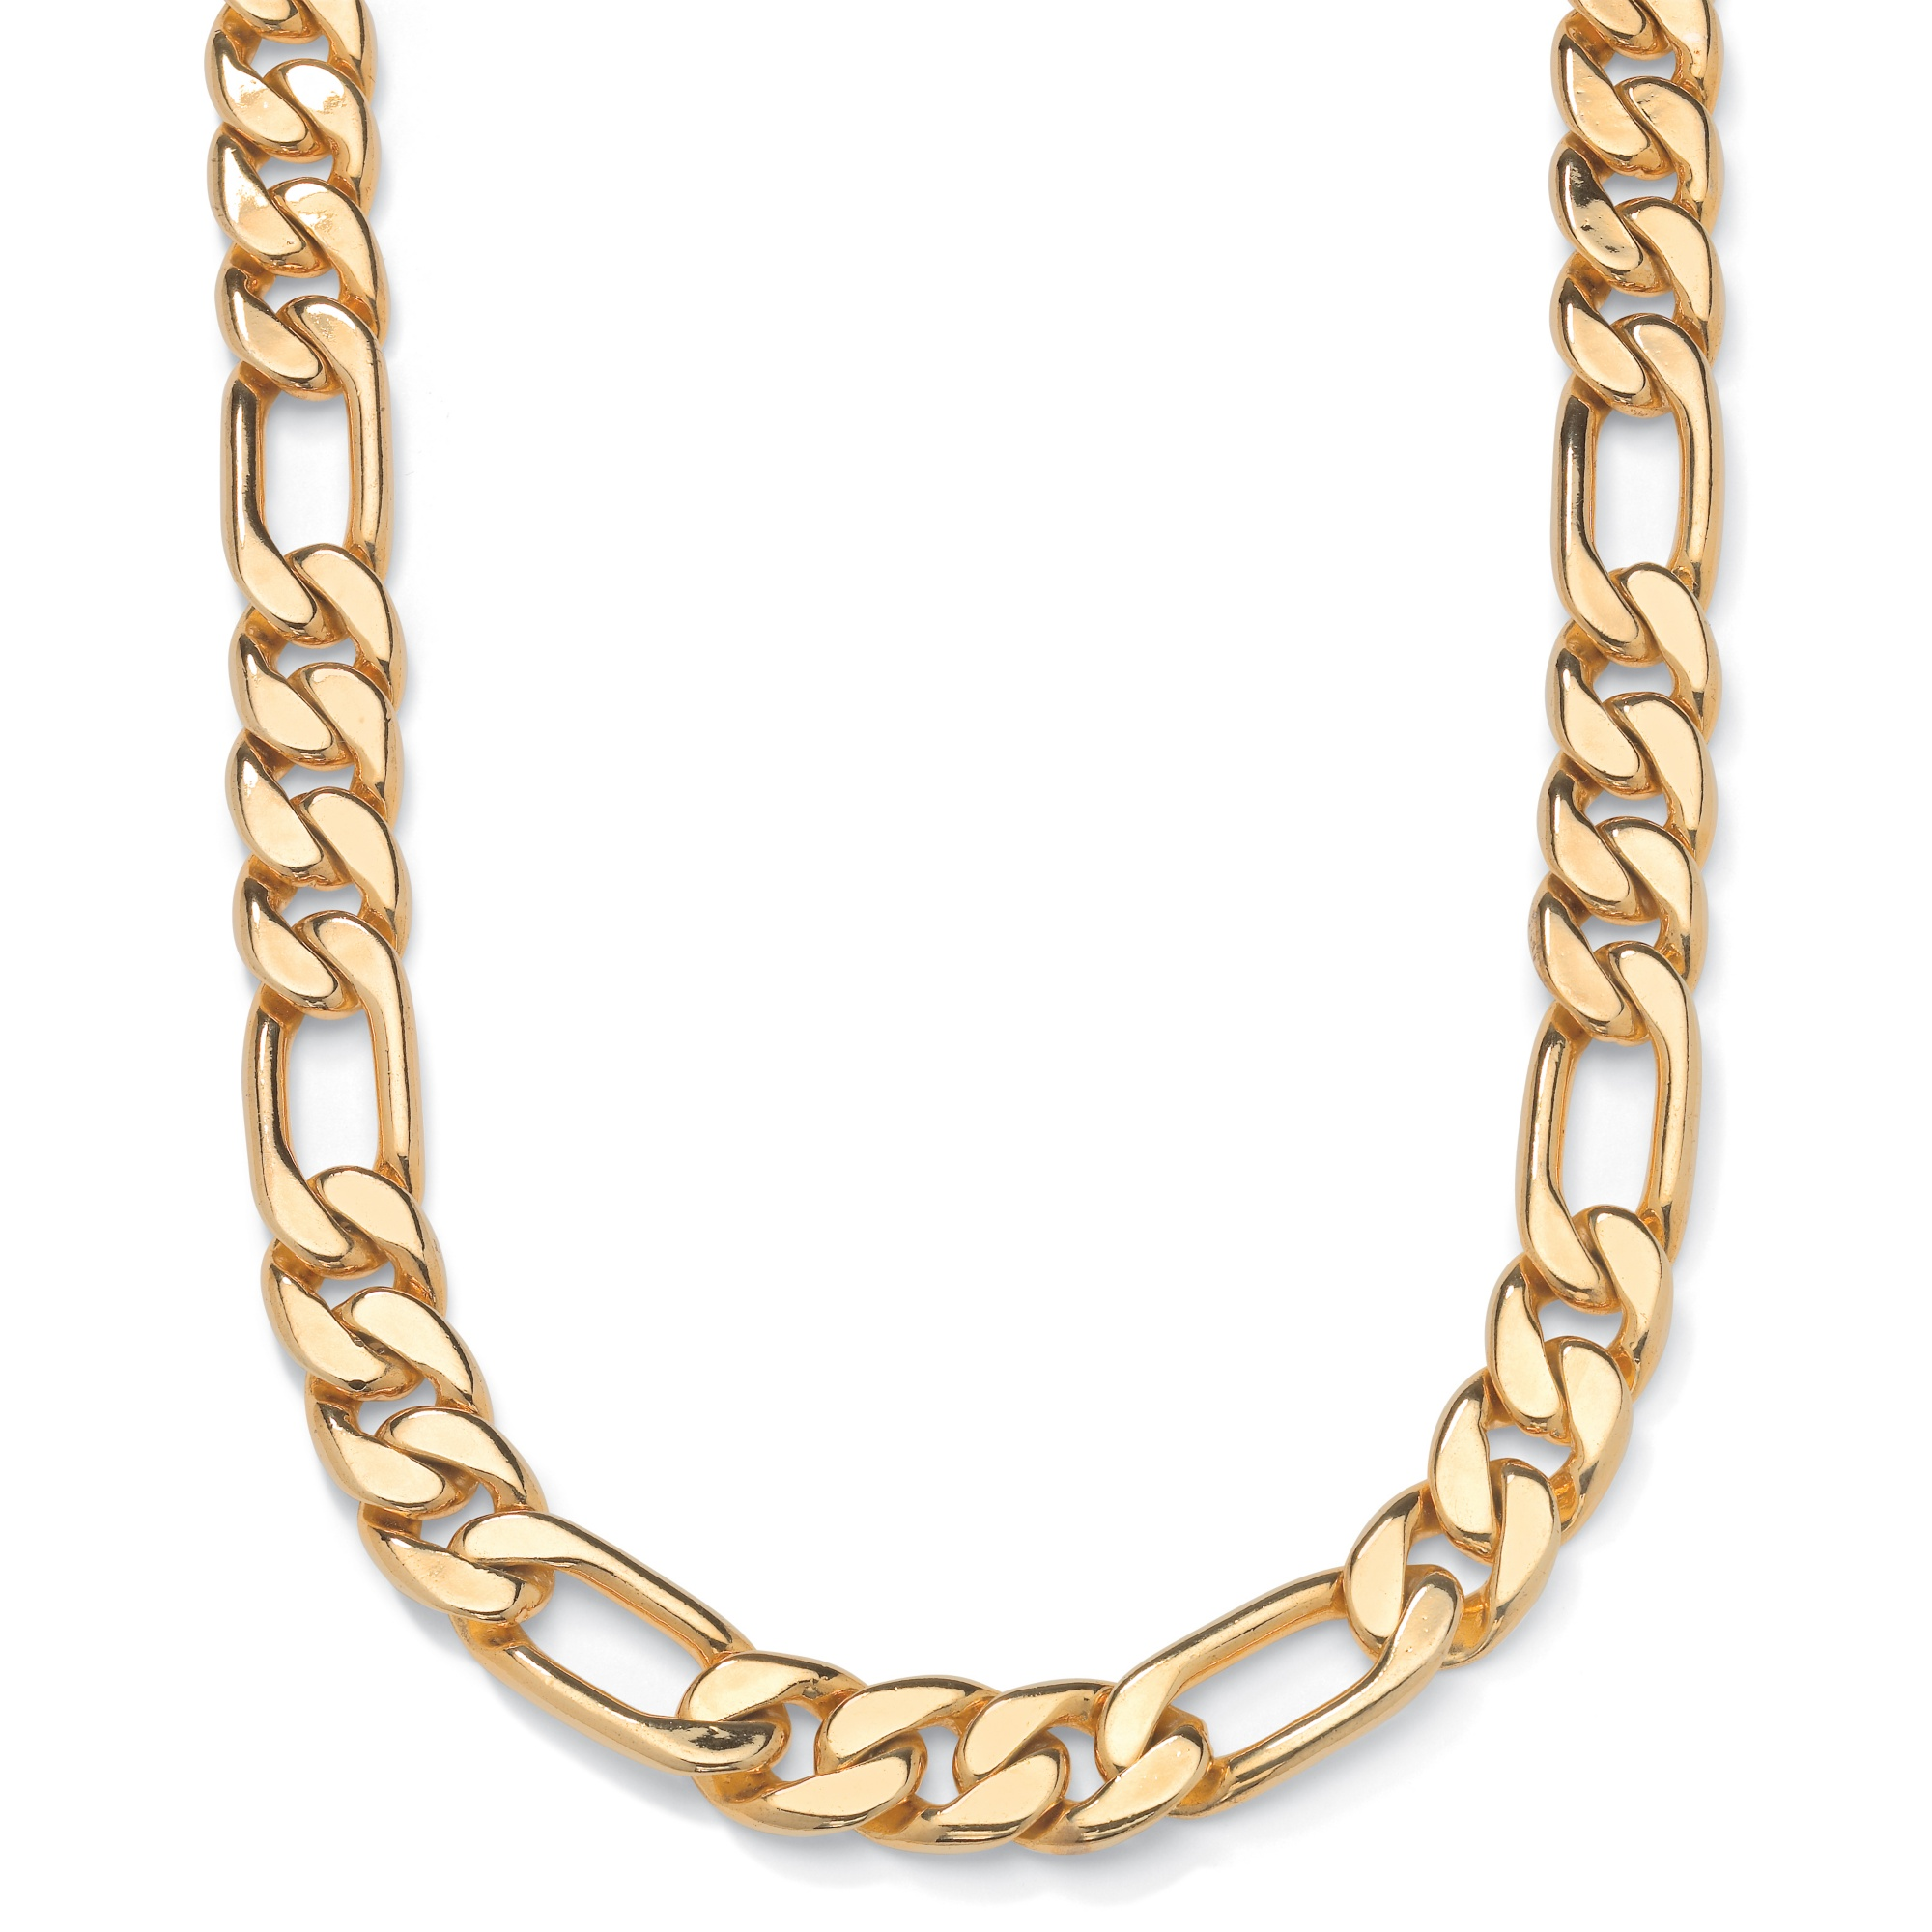 Figaro-Link Necklace in Yellow Gold Tone 24""